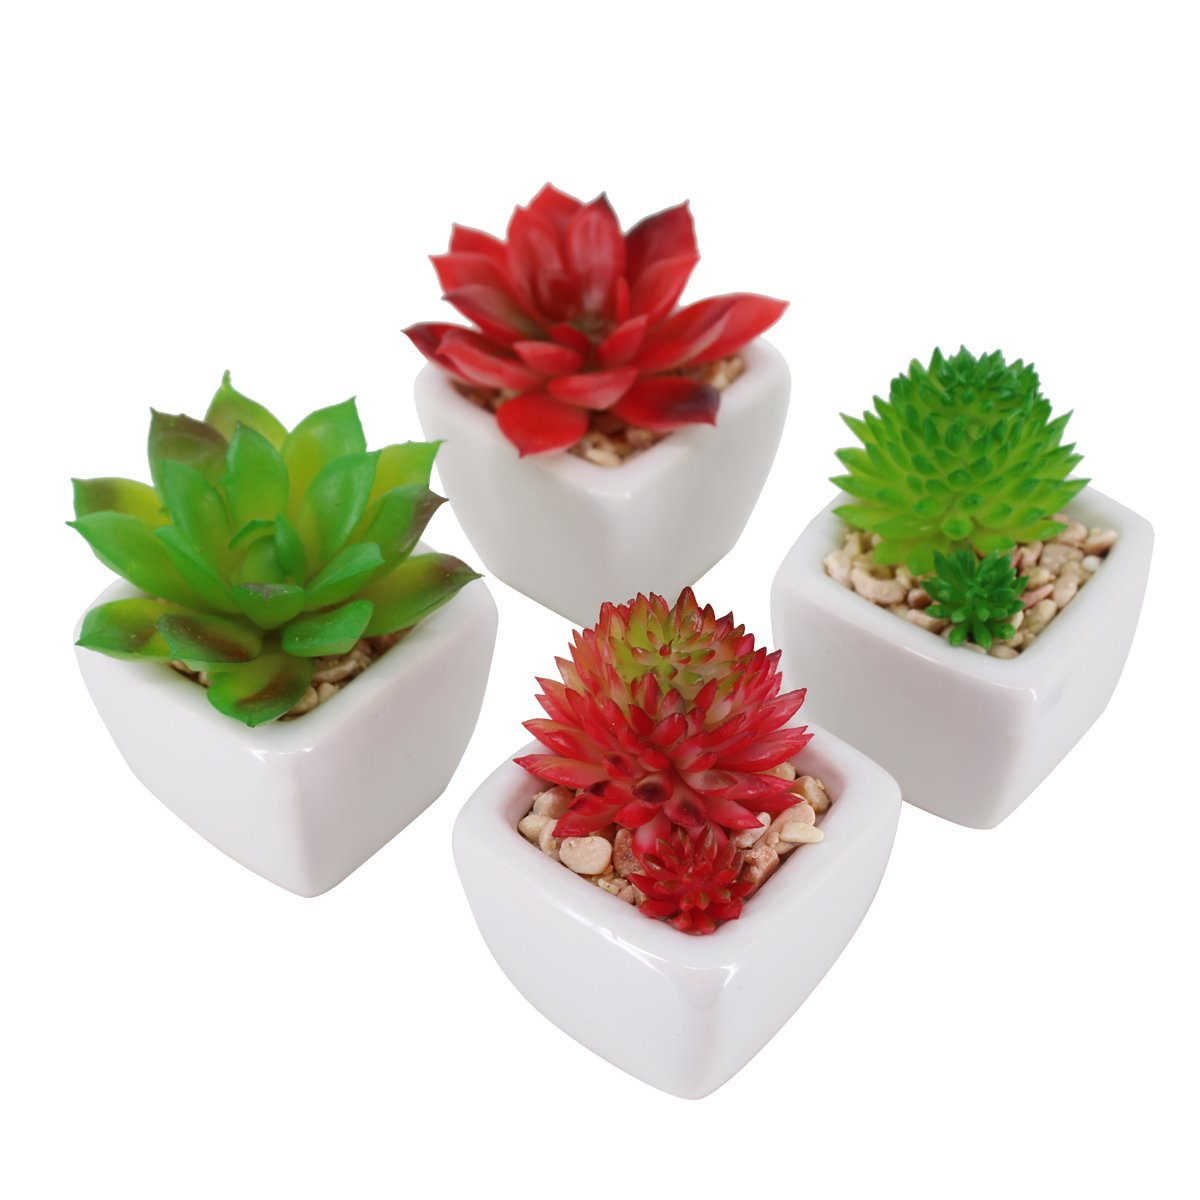 Pack of 4 Small White Ceramic Planter Pots with 4 different Artificial Succulent Plants for Home Decoration